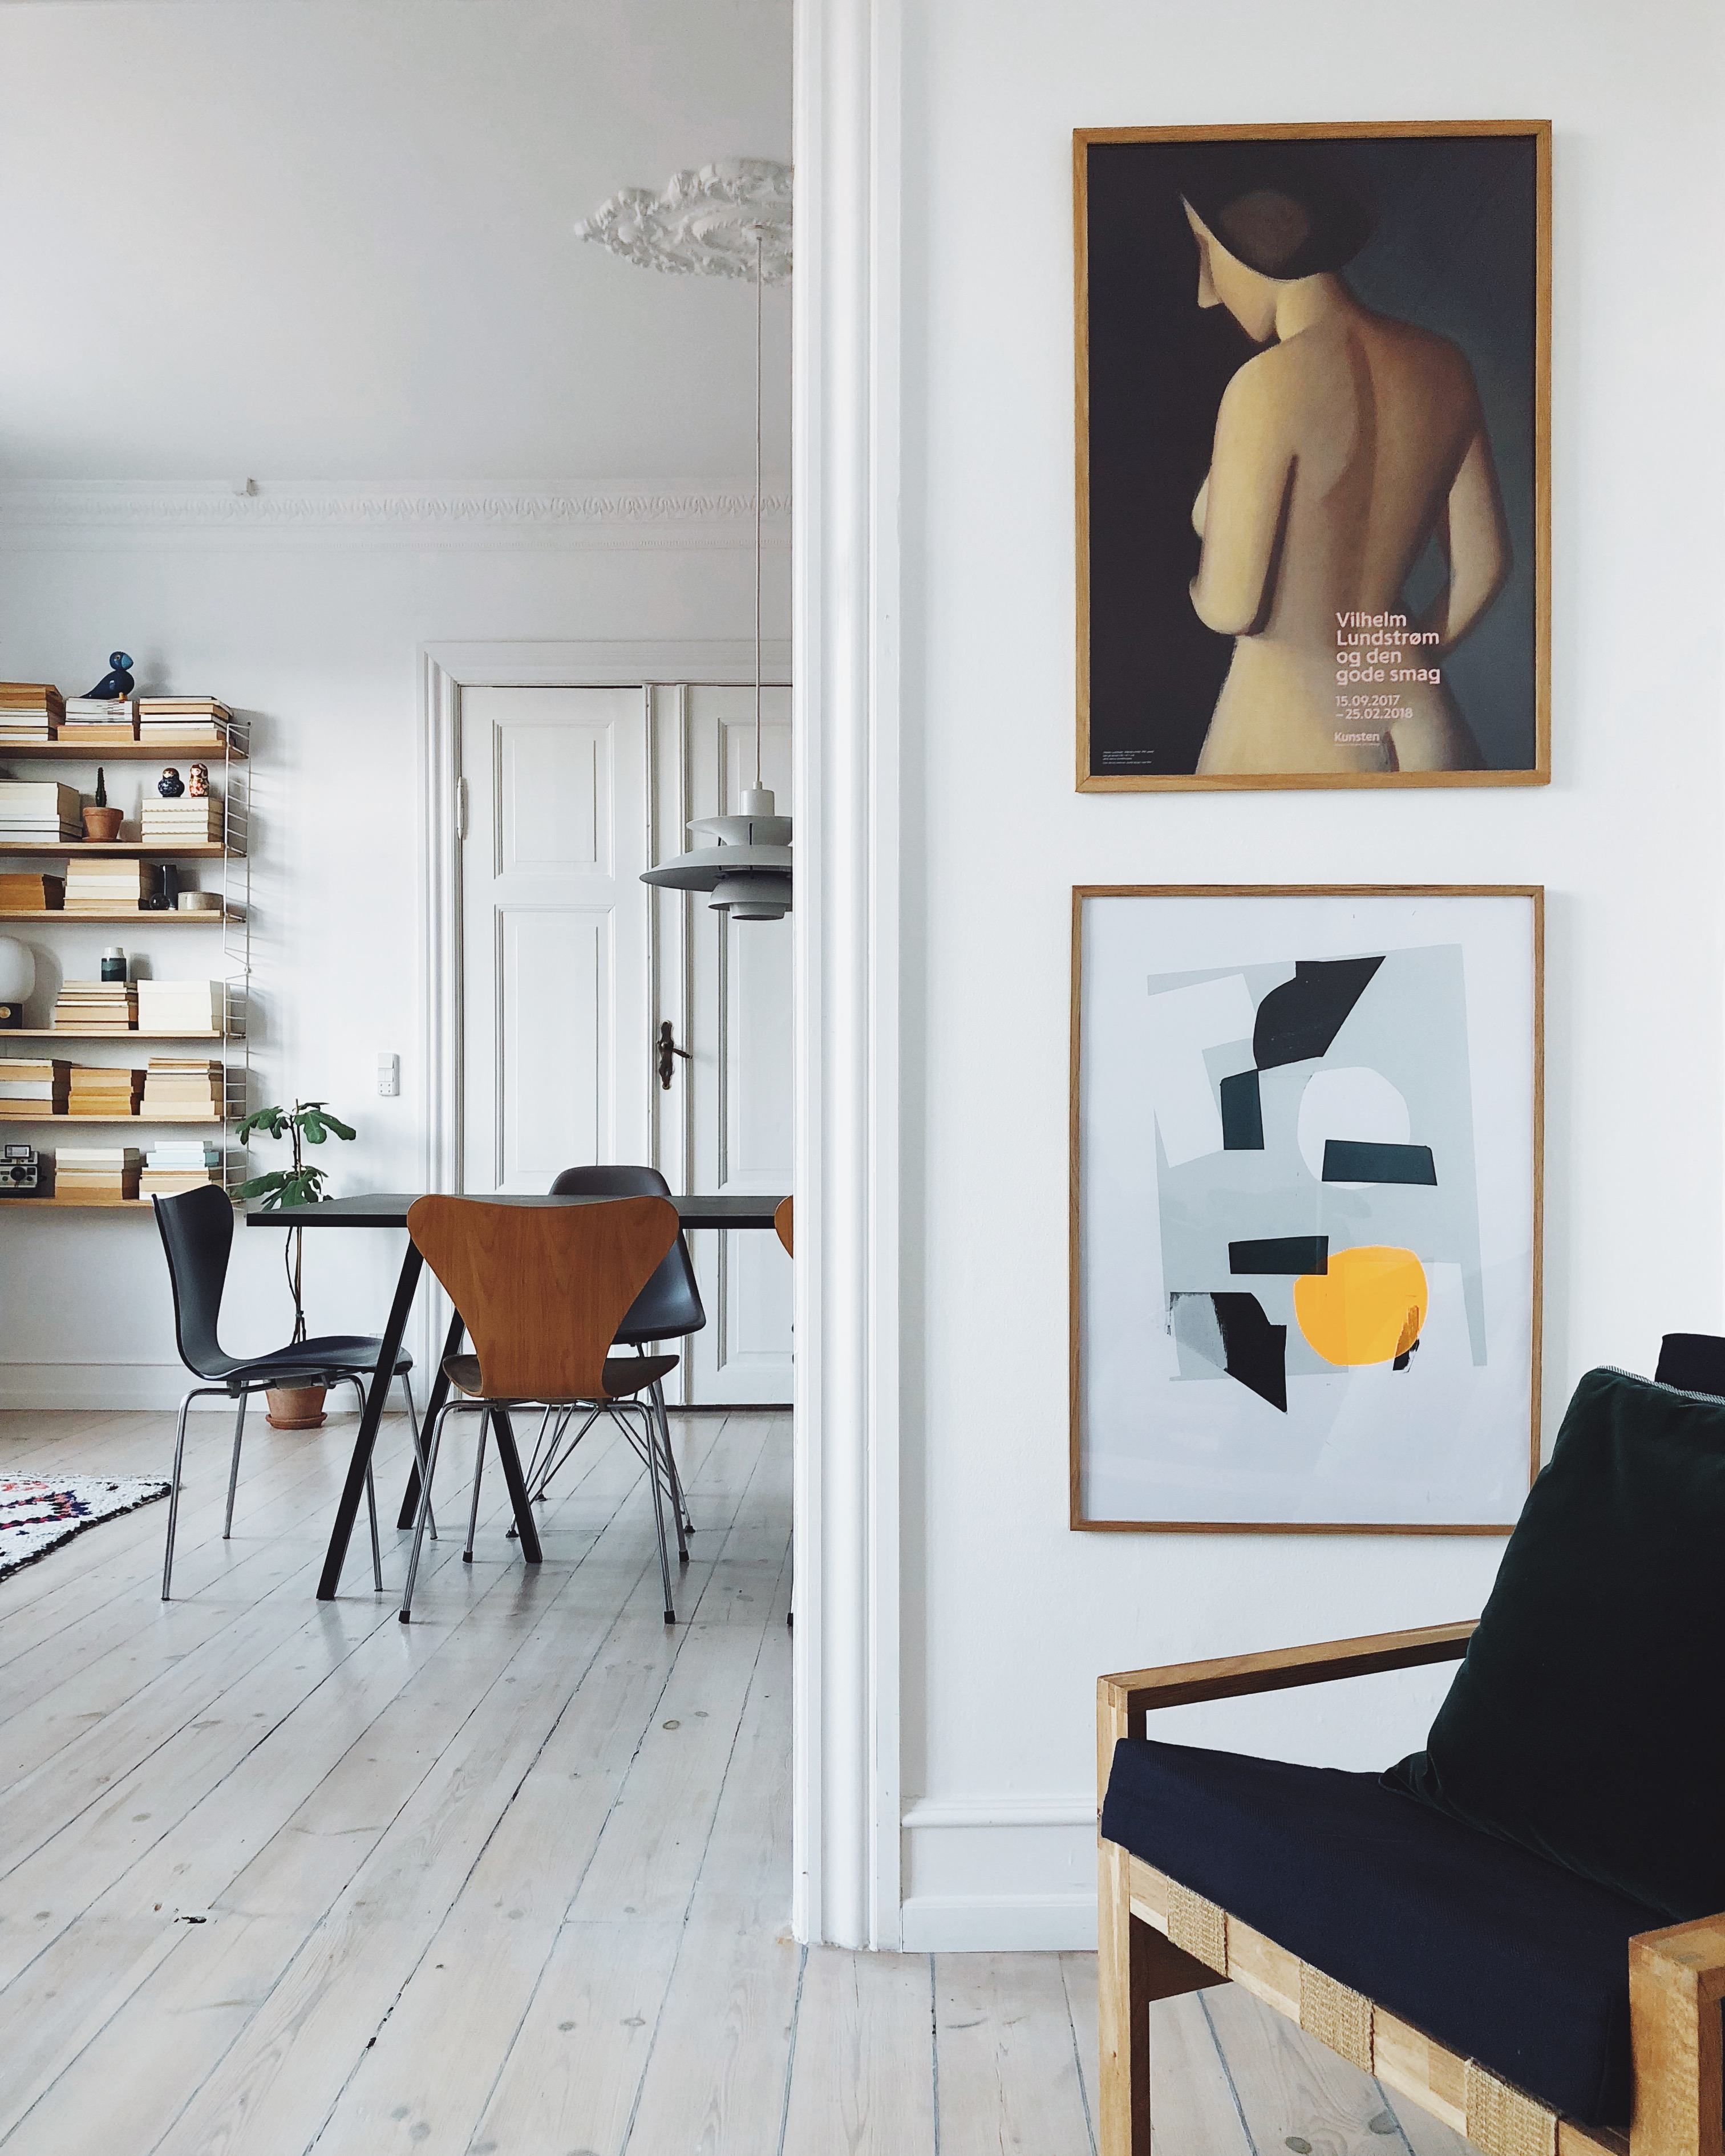 An interior mix of vintage, classic and modern styles - Copenhagen